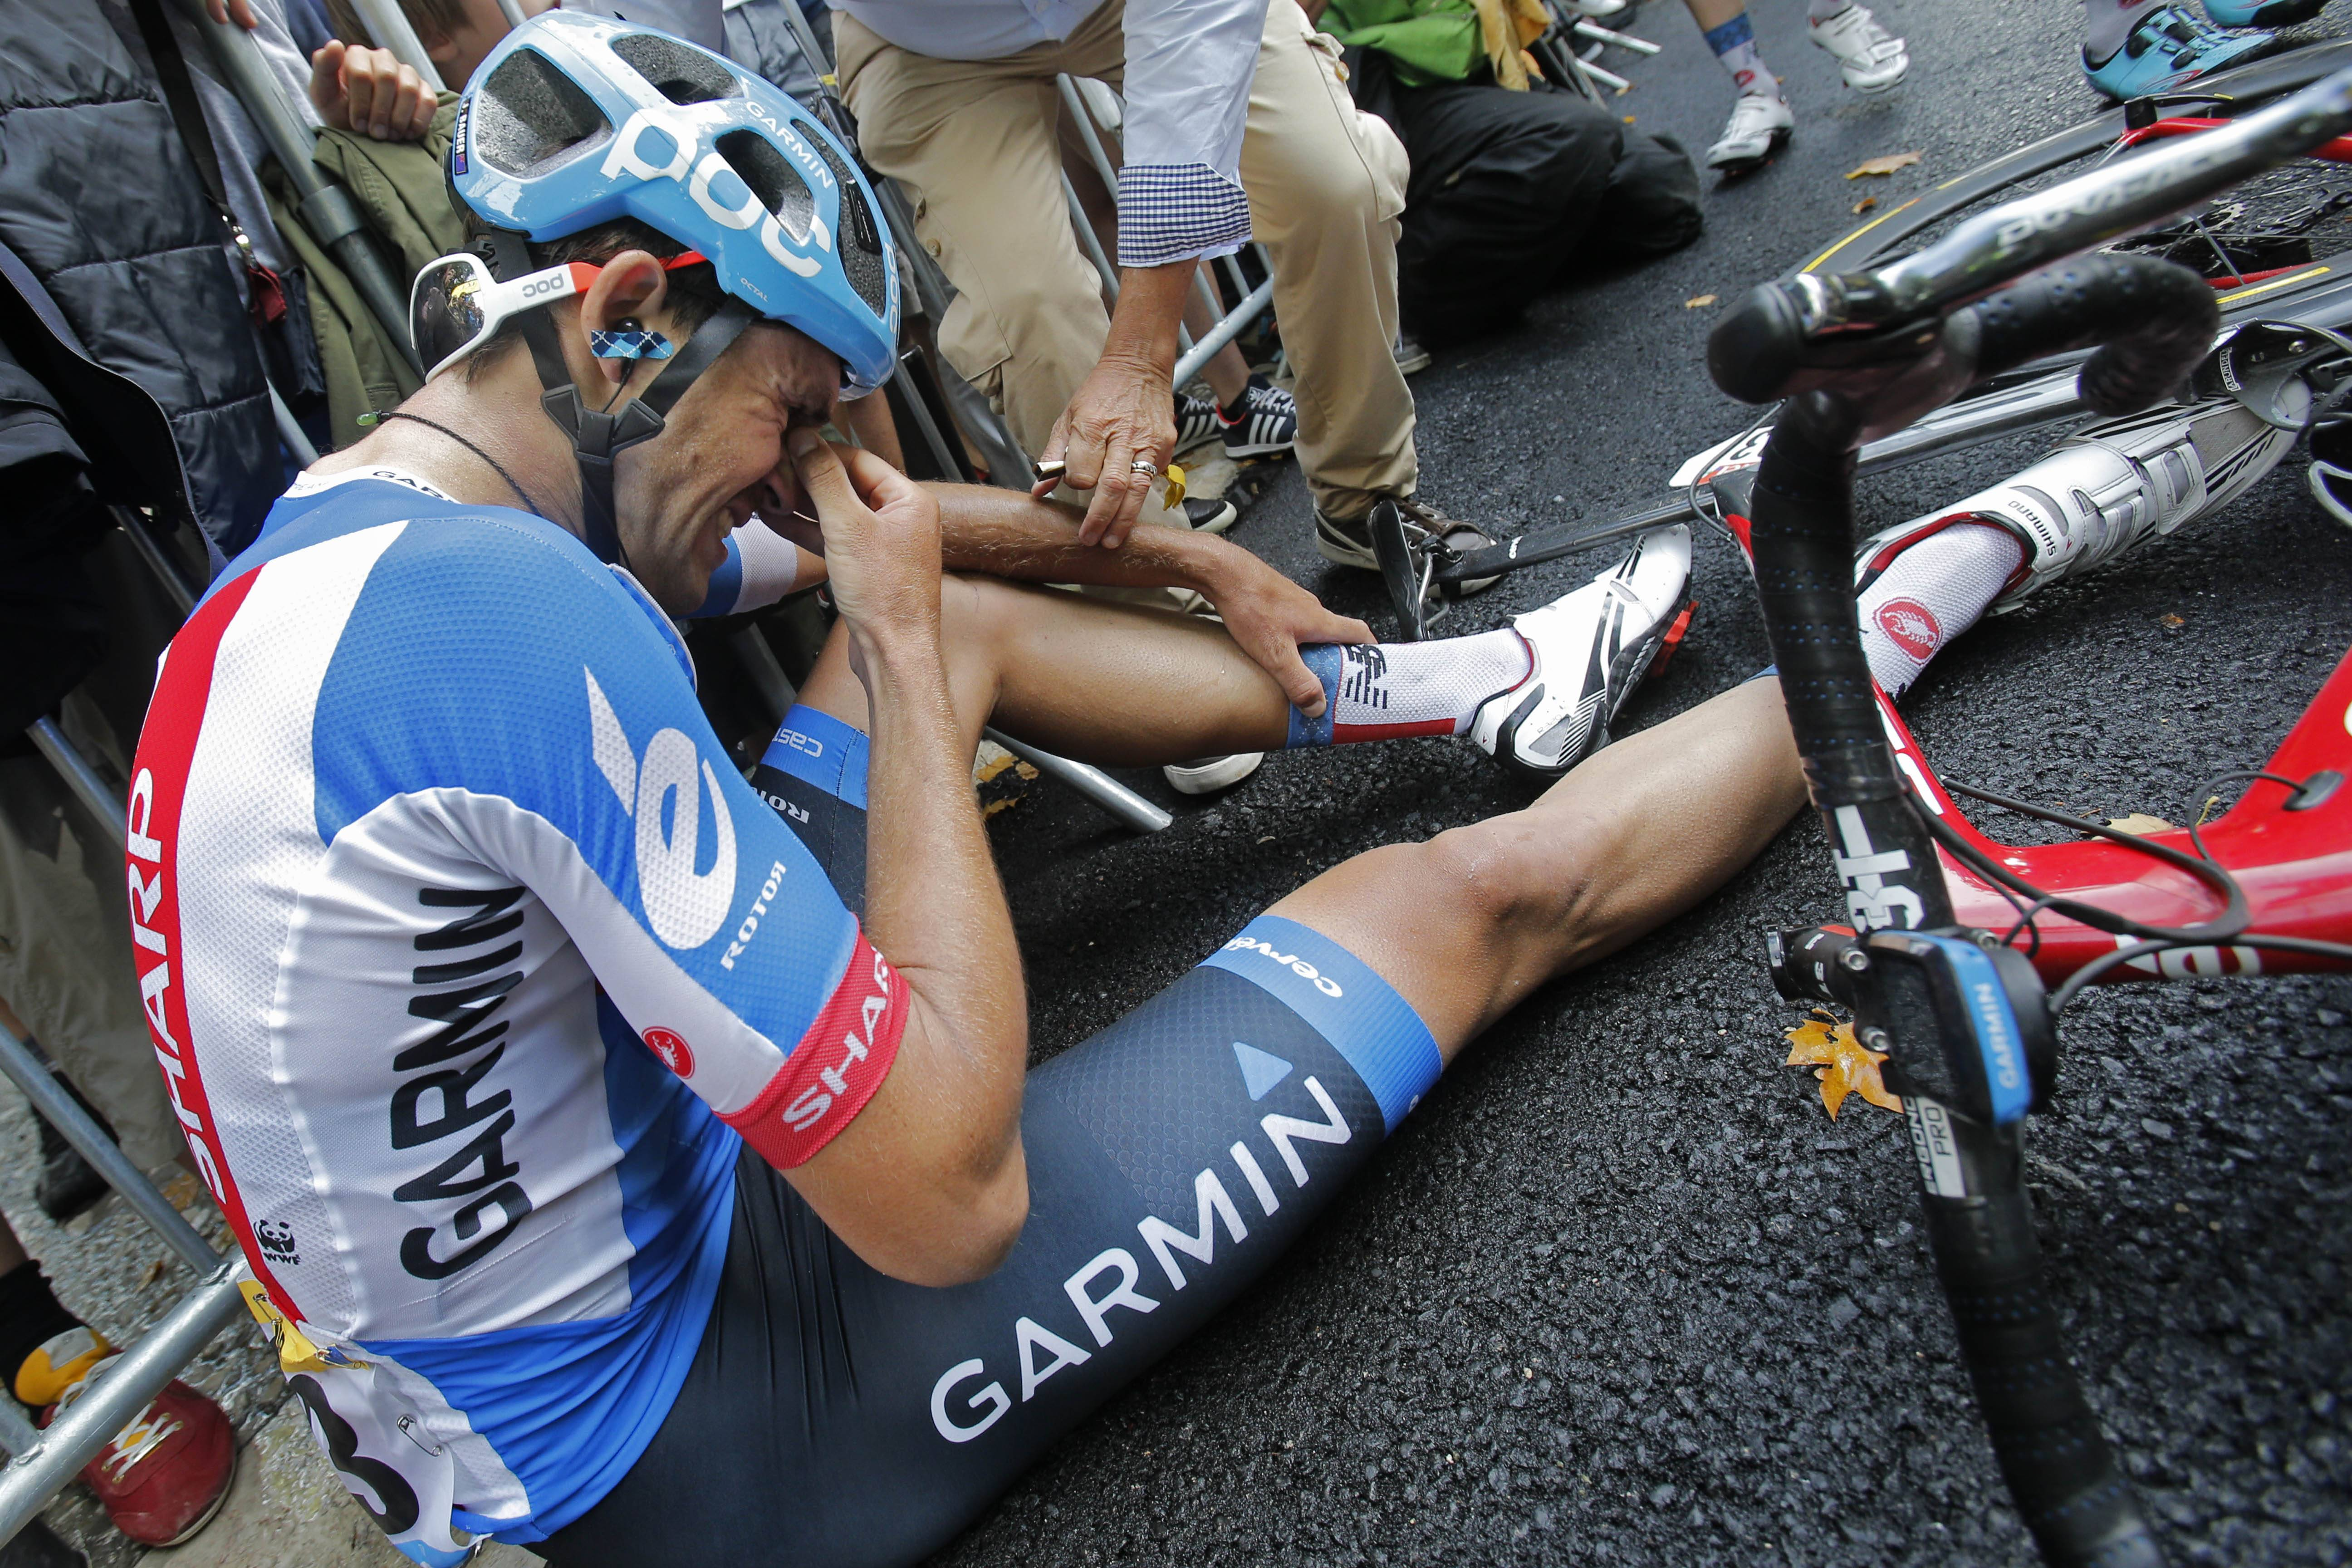 New Zealand's Jack Bauer, who rode in the two-man breakaway all of the race, cries Sunday after being caught in the last meters of the 15th stage of the Tour de France.